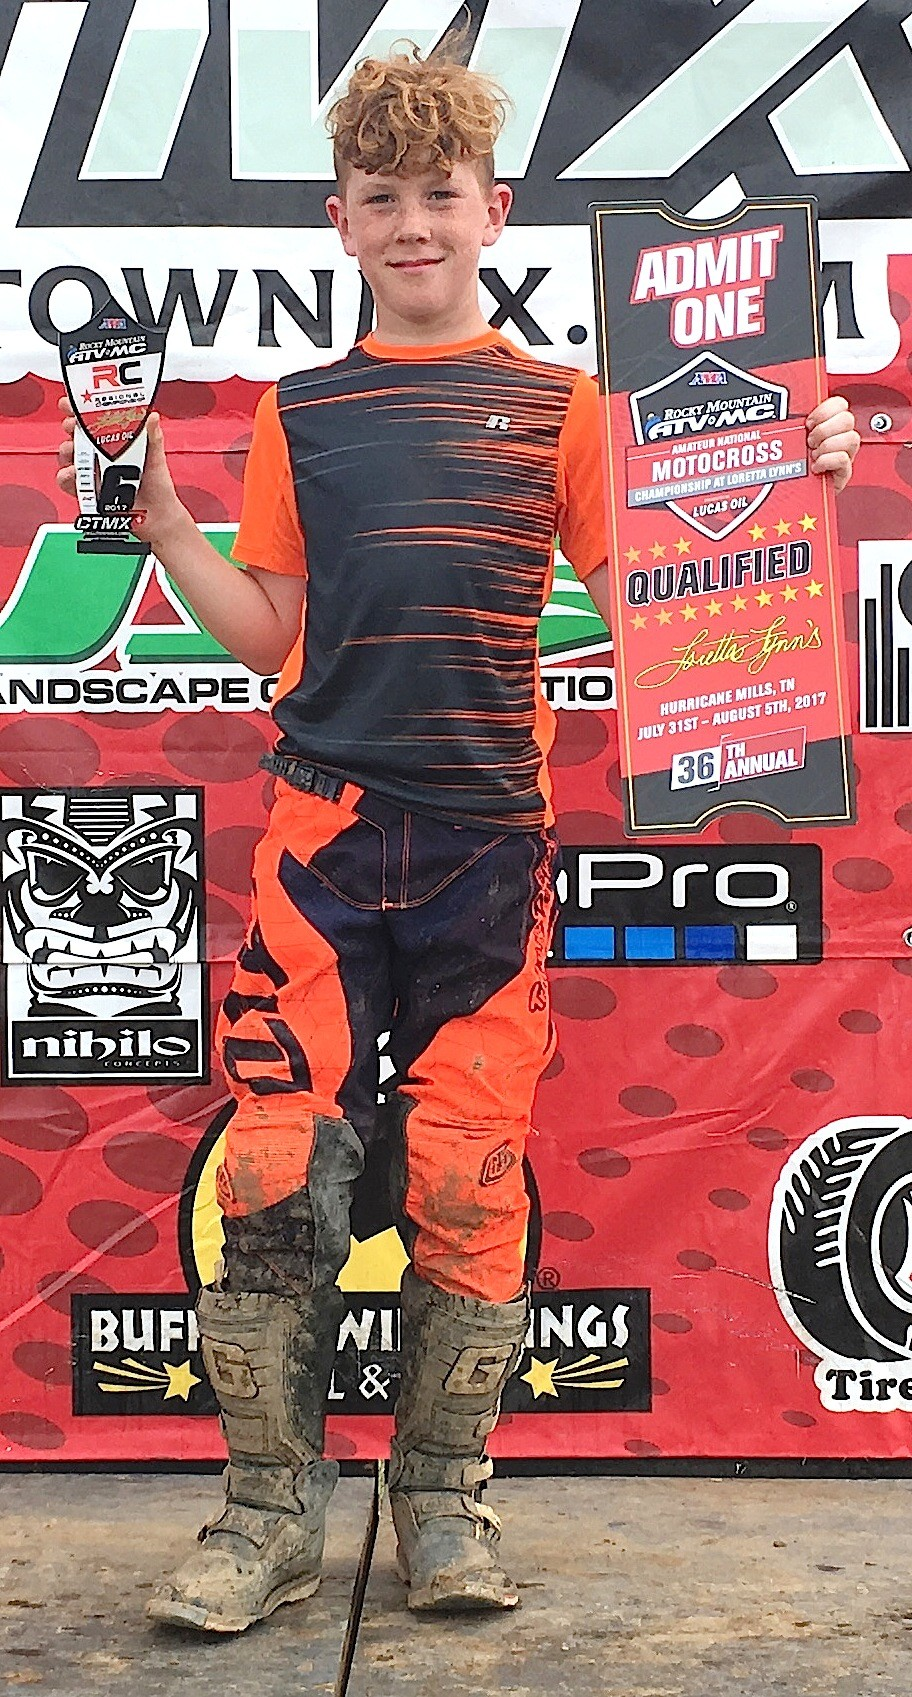 Jack Baker, 12, of Arley earned a spot in the Motocross Nationals with a sixth-place finish in the Mid-East Regional in Ohio last month.